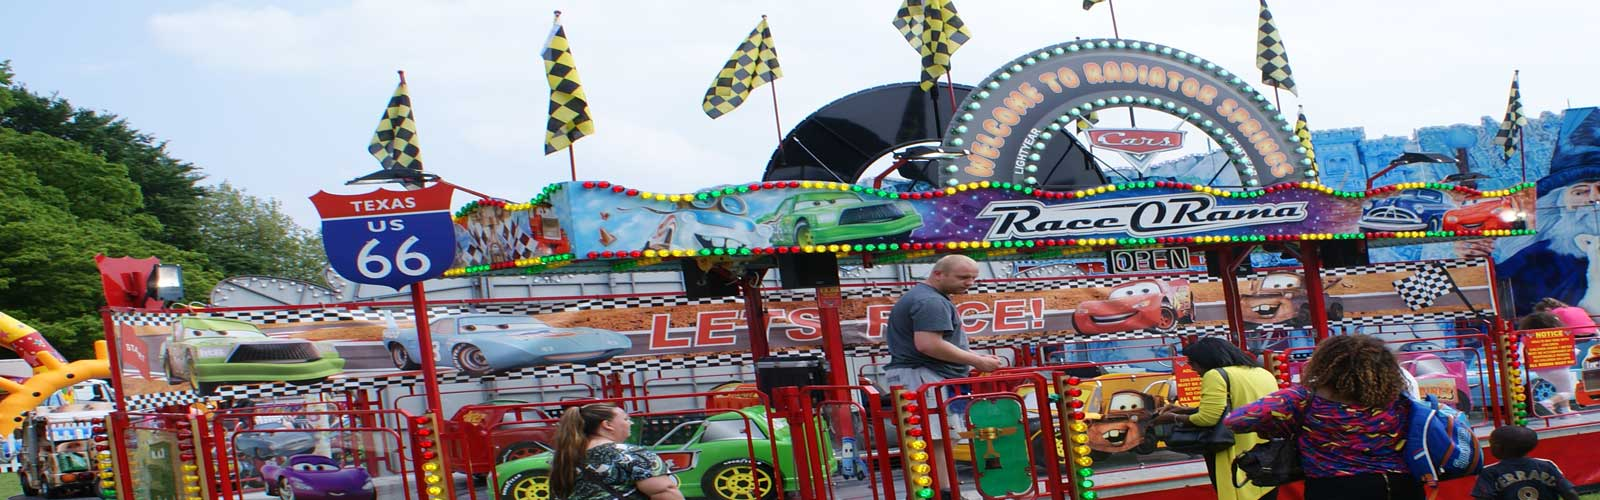 John Collins Funfairs new Race O Rama childrens ride